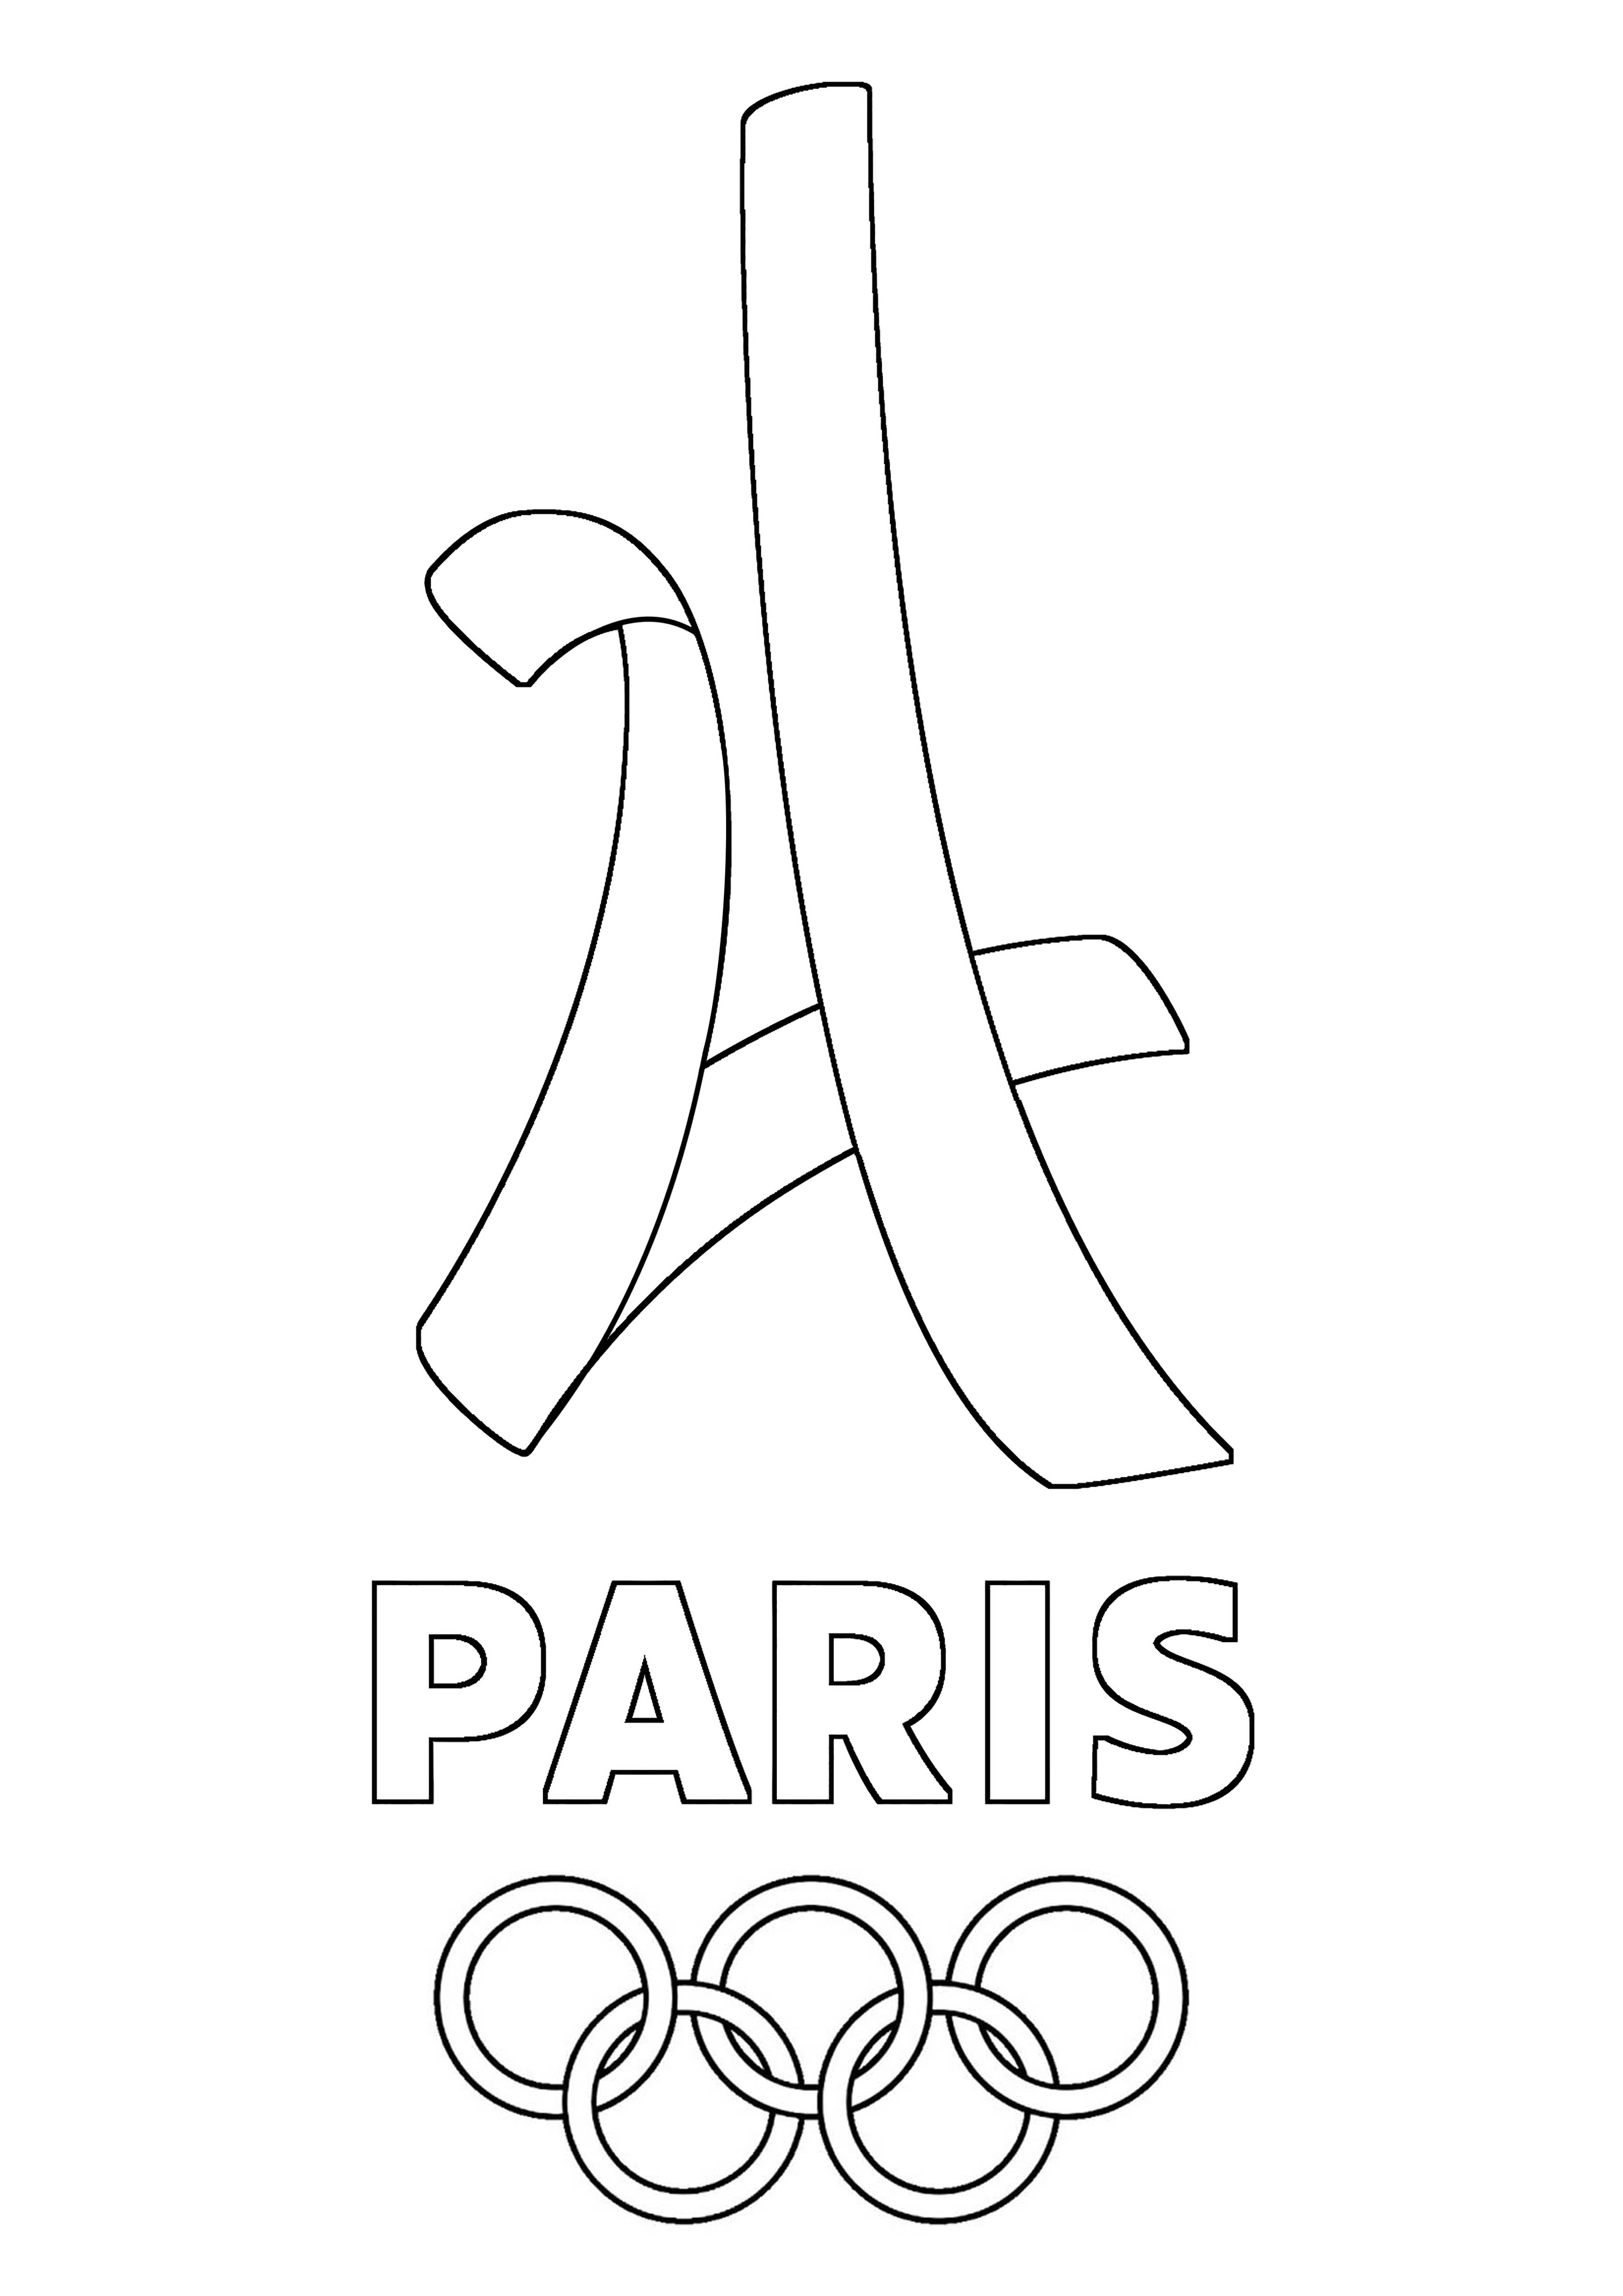 Logo paris 2024 olympic games | Olympic (and sport) coloring pages ...